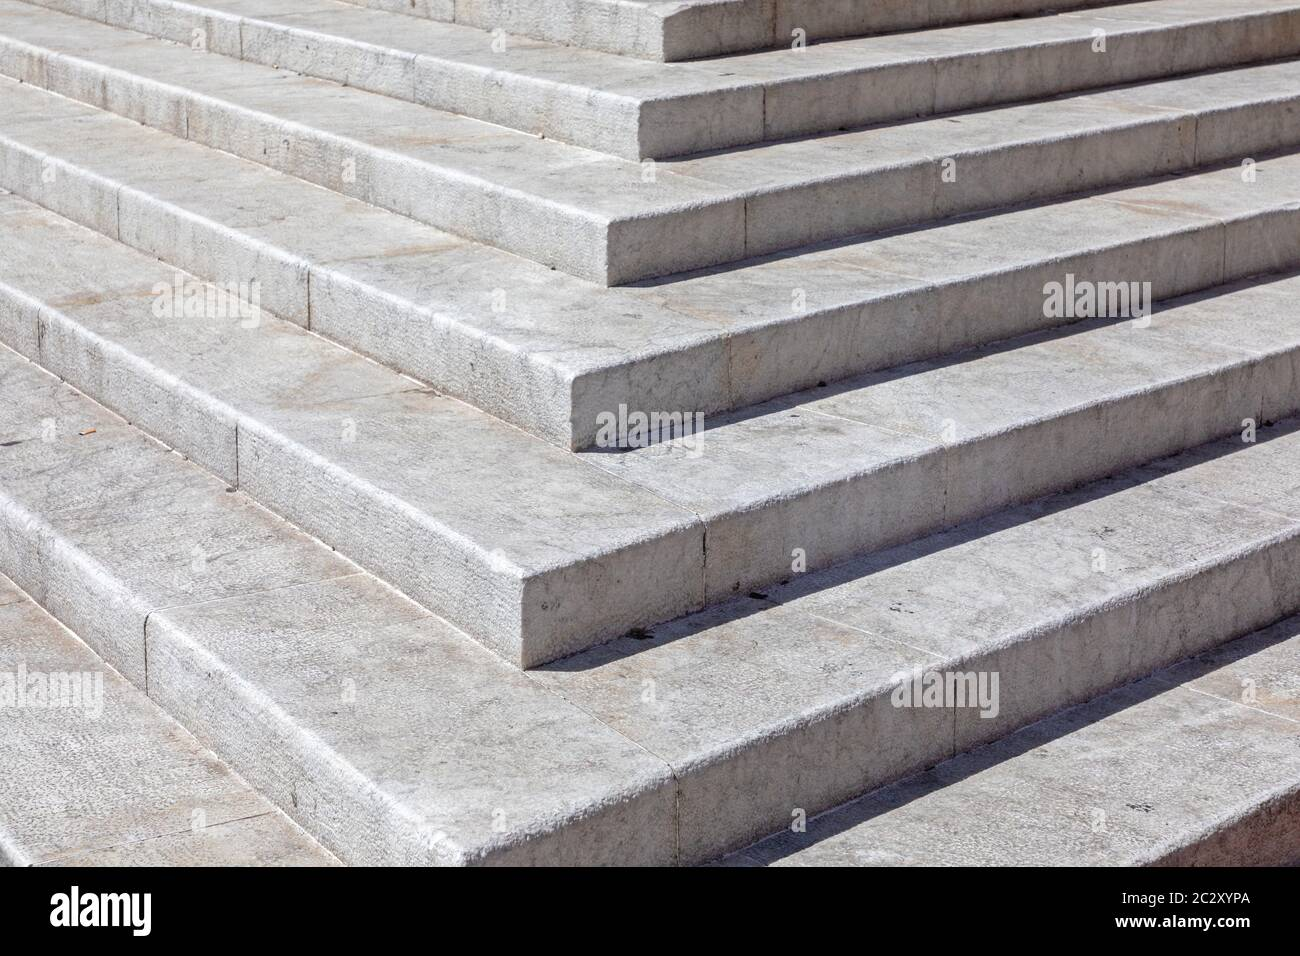 White Marble Stone Stairs In Bologna Italy Stock Photo Alamy